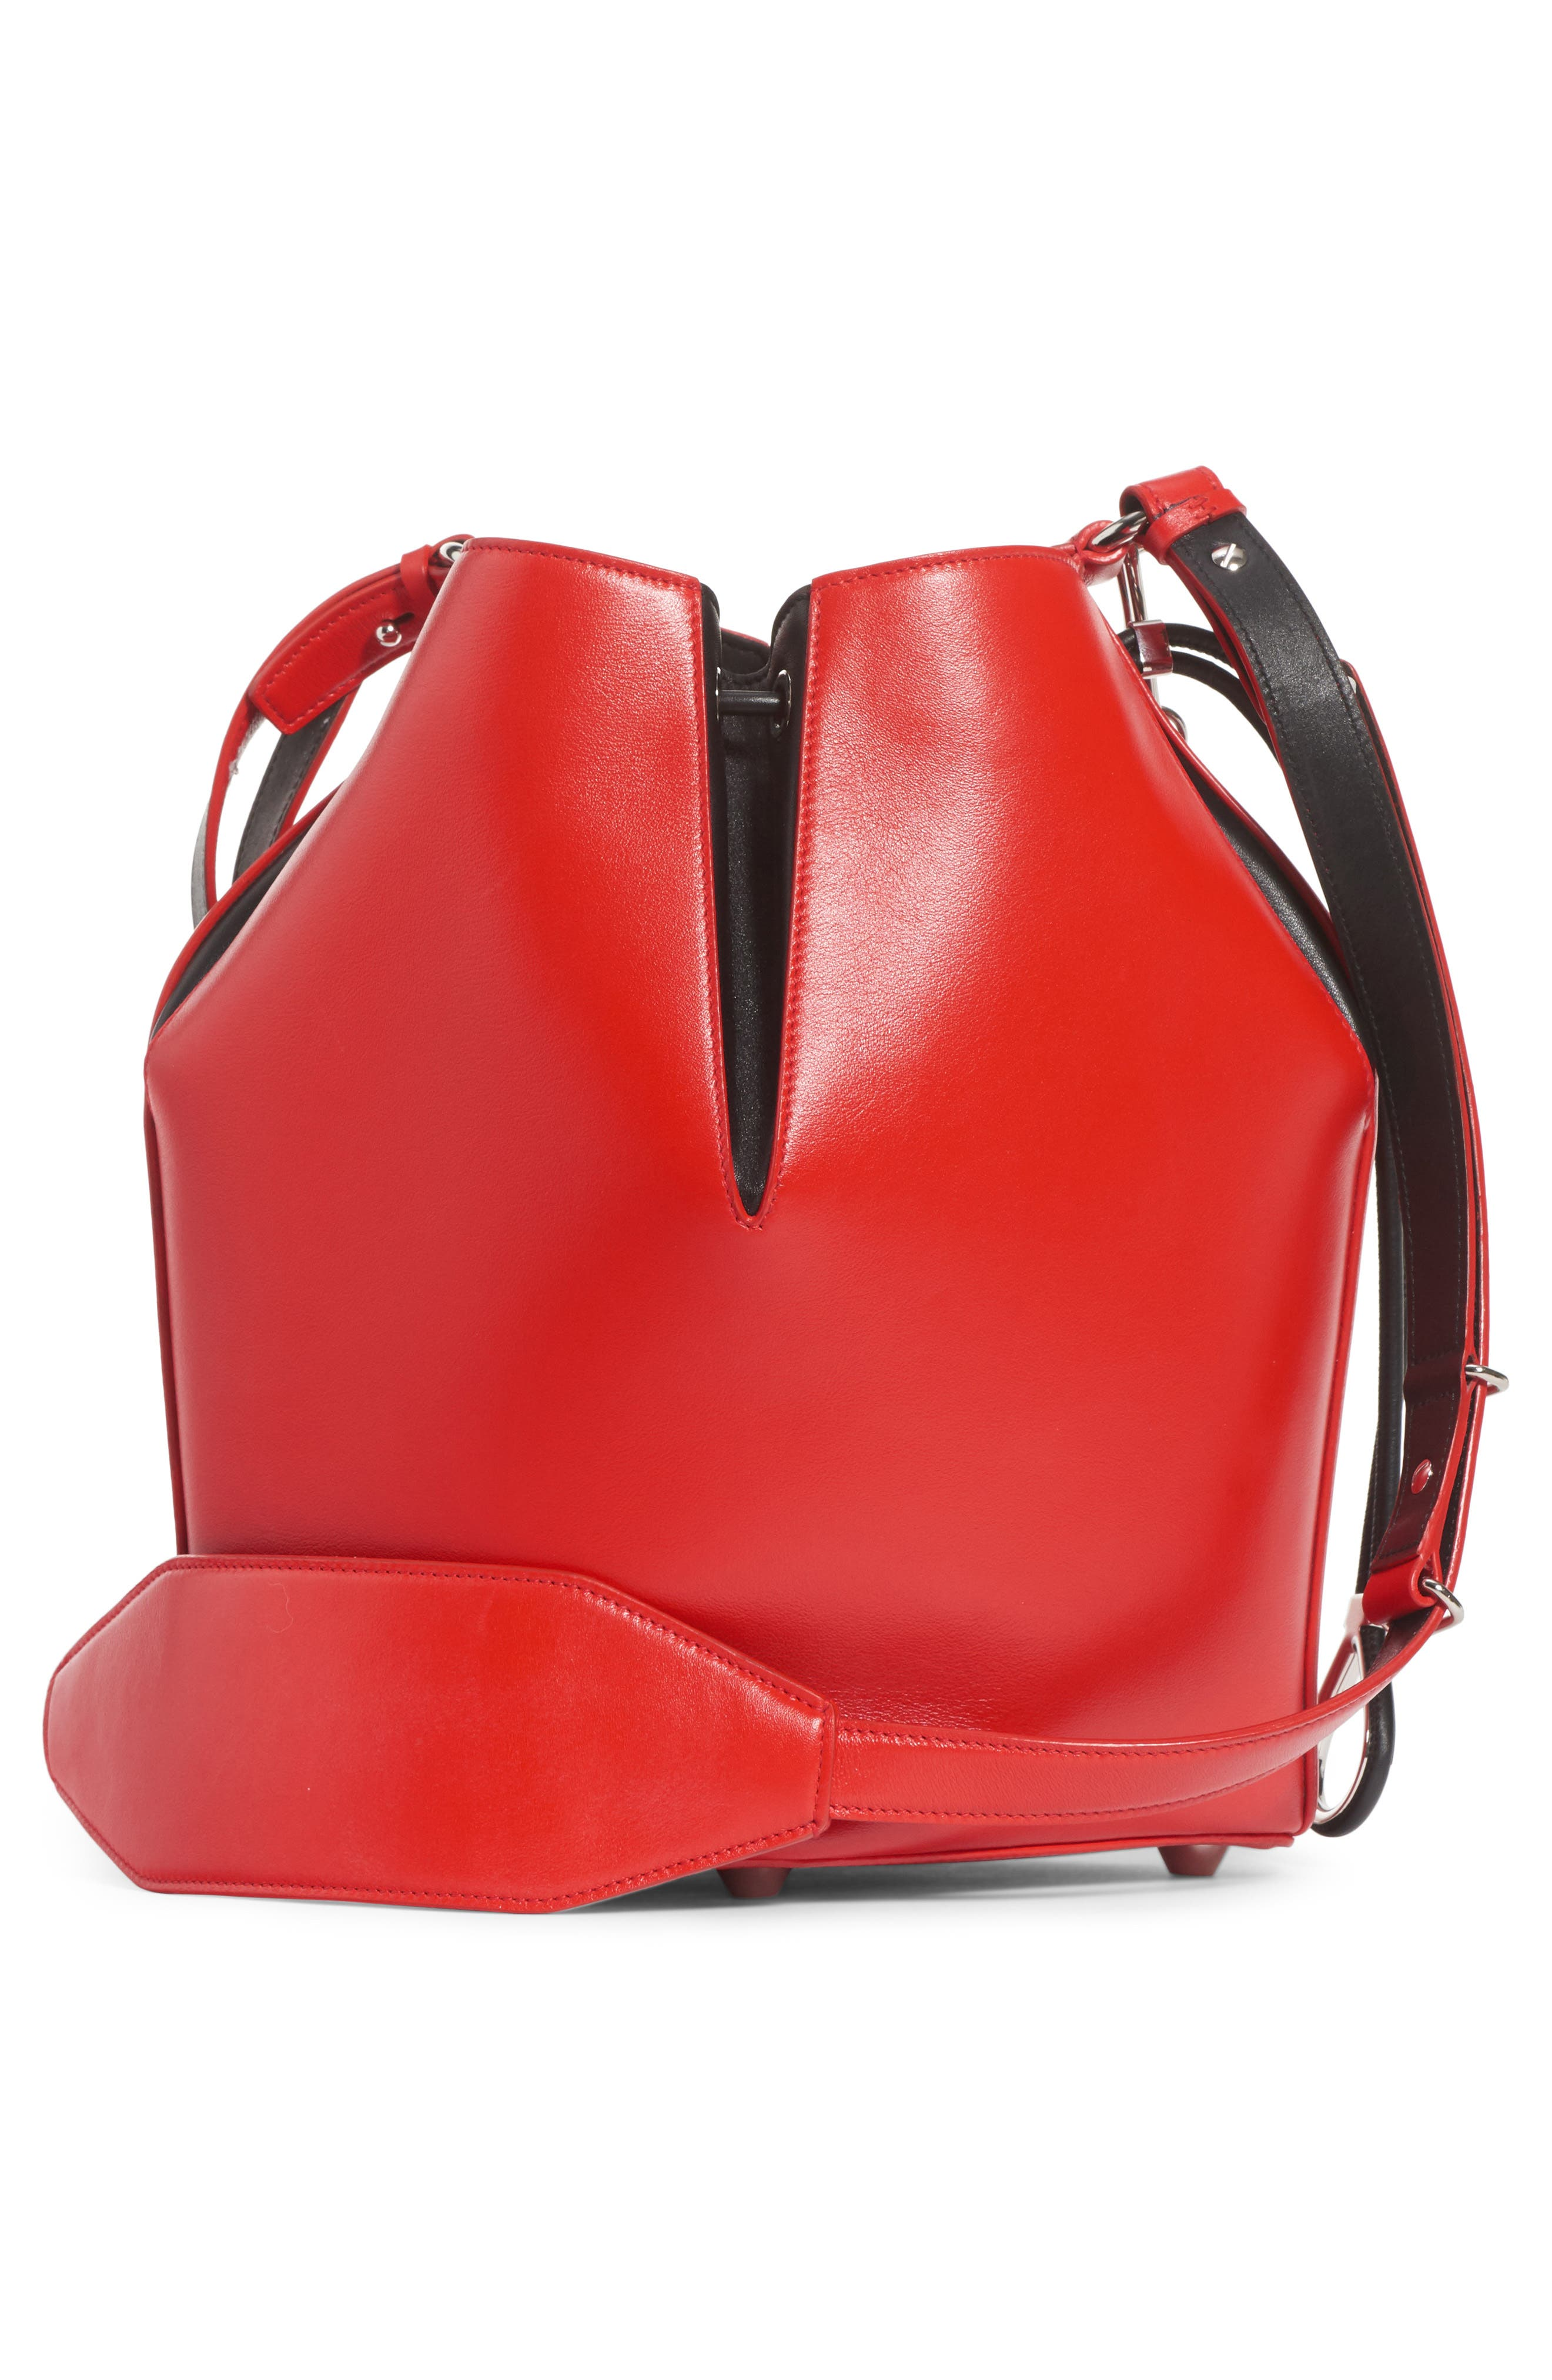 Leather Bucket Bag,                             Alternate thumbnail 3, color,                             LUST RED/ BLACK